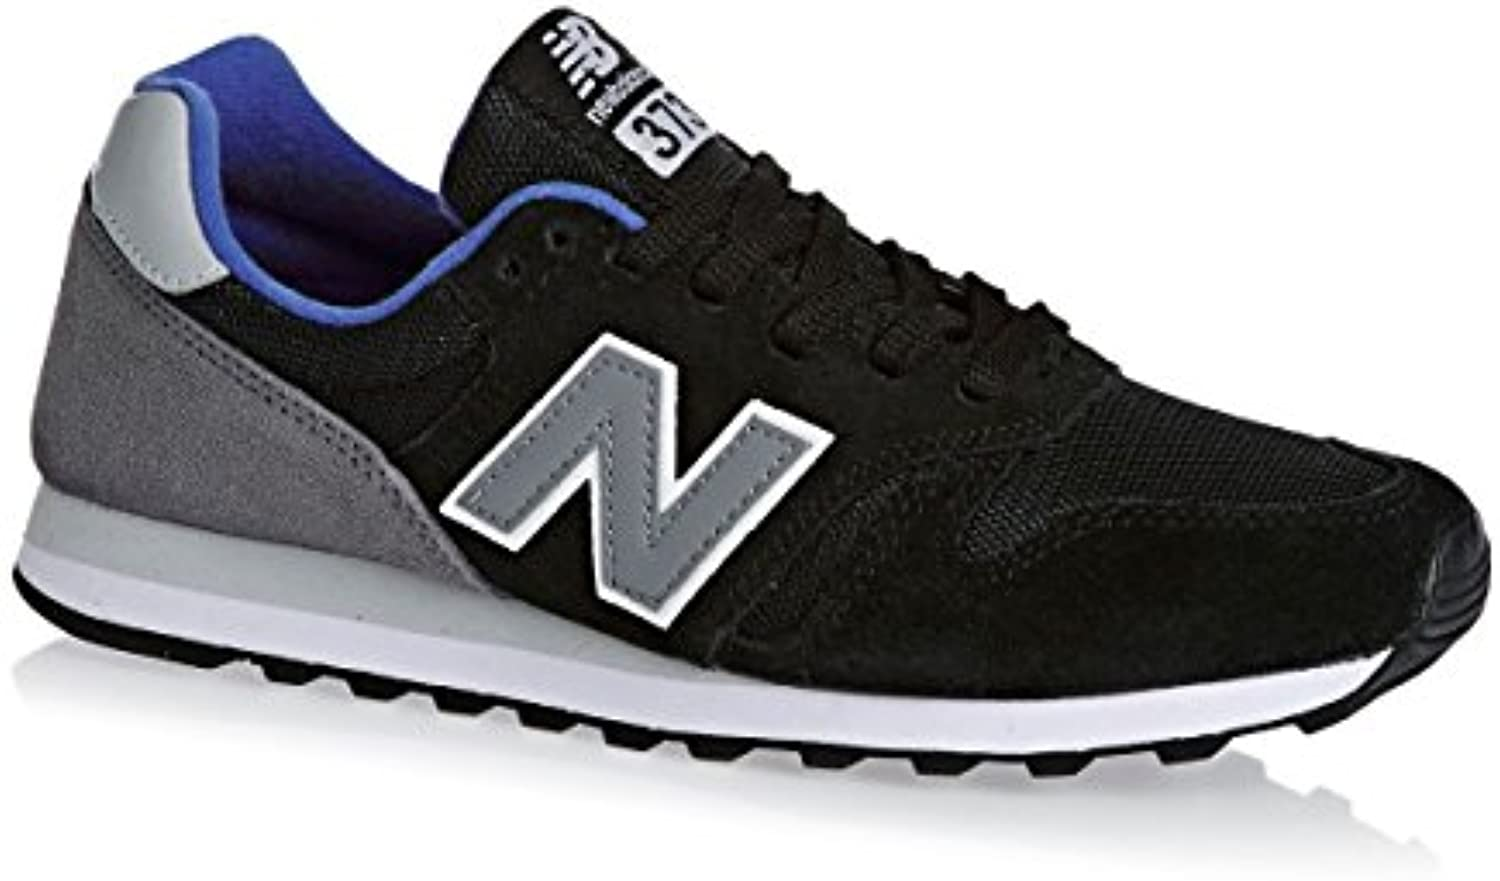 New Balance Herren Sneaker ML373 521261 60 Black 37.5